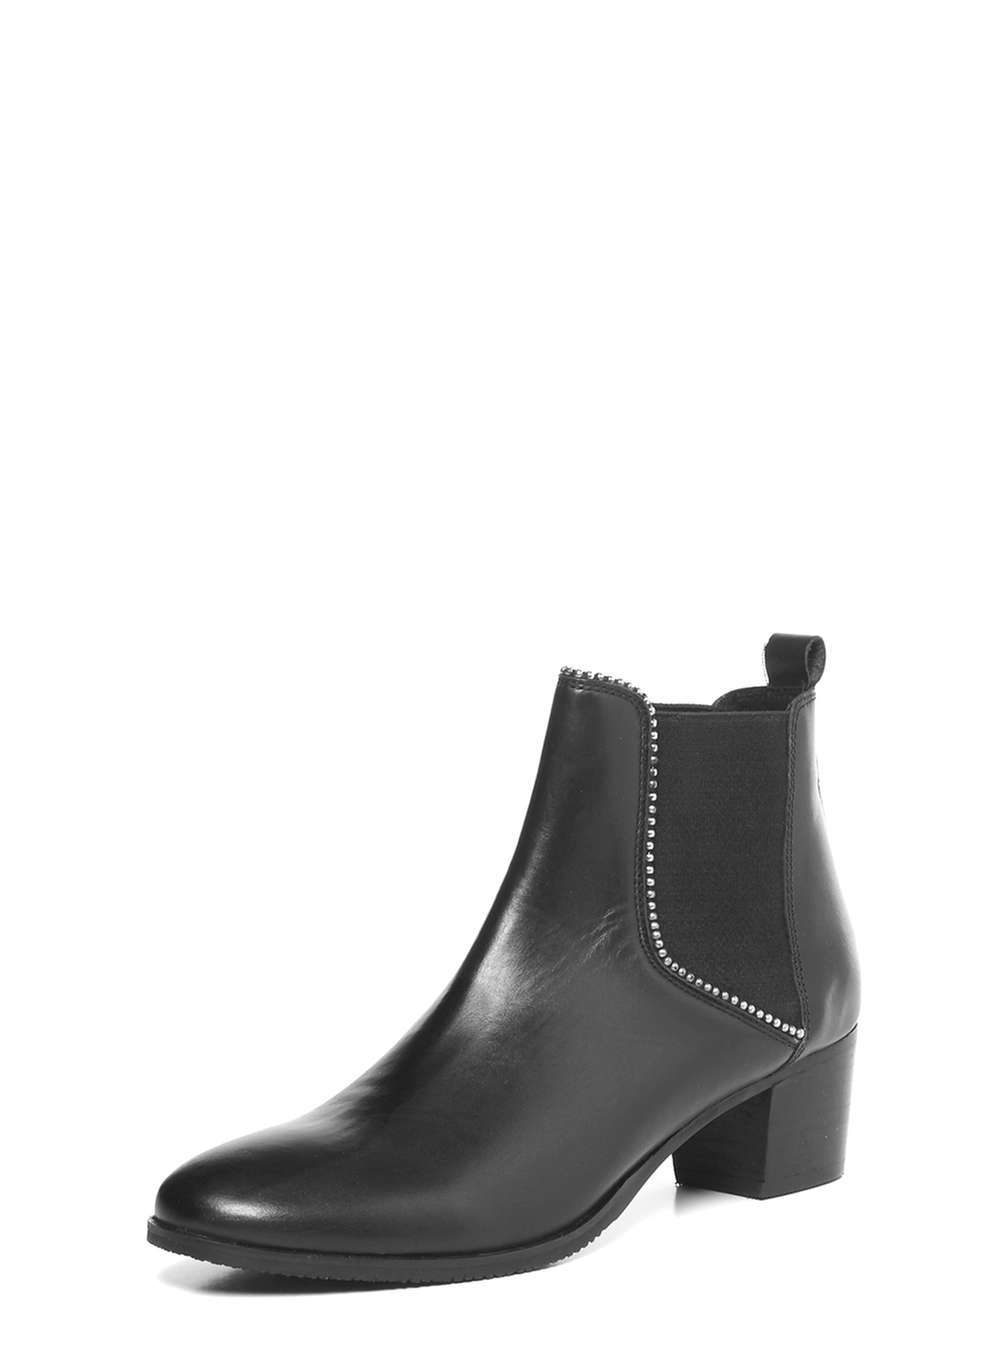 Womens **Ravel Black Ankle Boots Black - predominant colour: black; occasions: casual, creative work; material: leather; heel height: mid; heel: block; toe: round toe; boot length: ankle boot; finish: plain; pattern: plain; style: chelsea; wardrobe: basic; season: a/w 2016